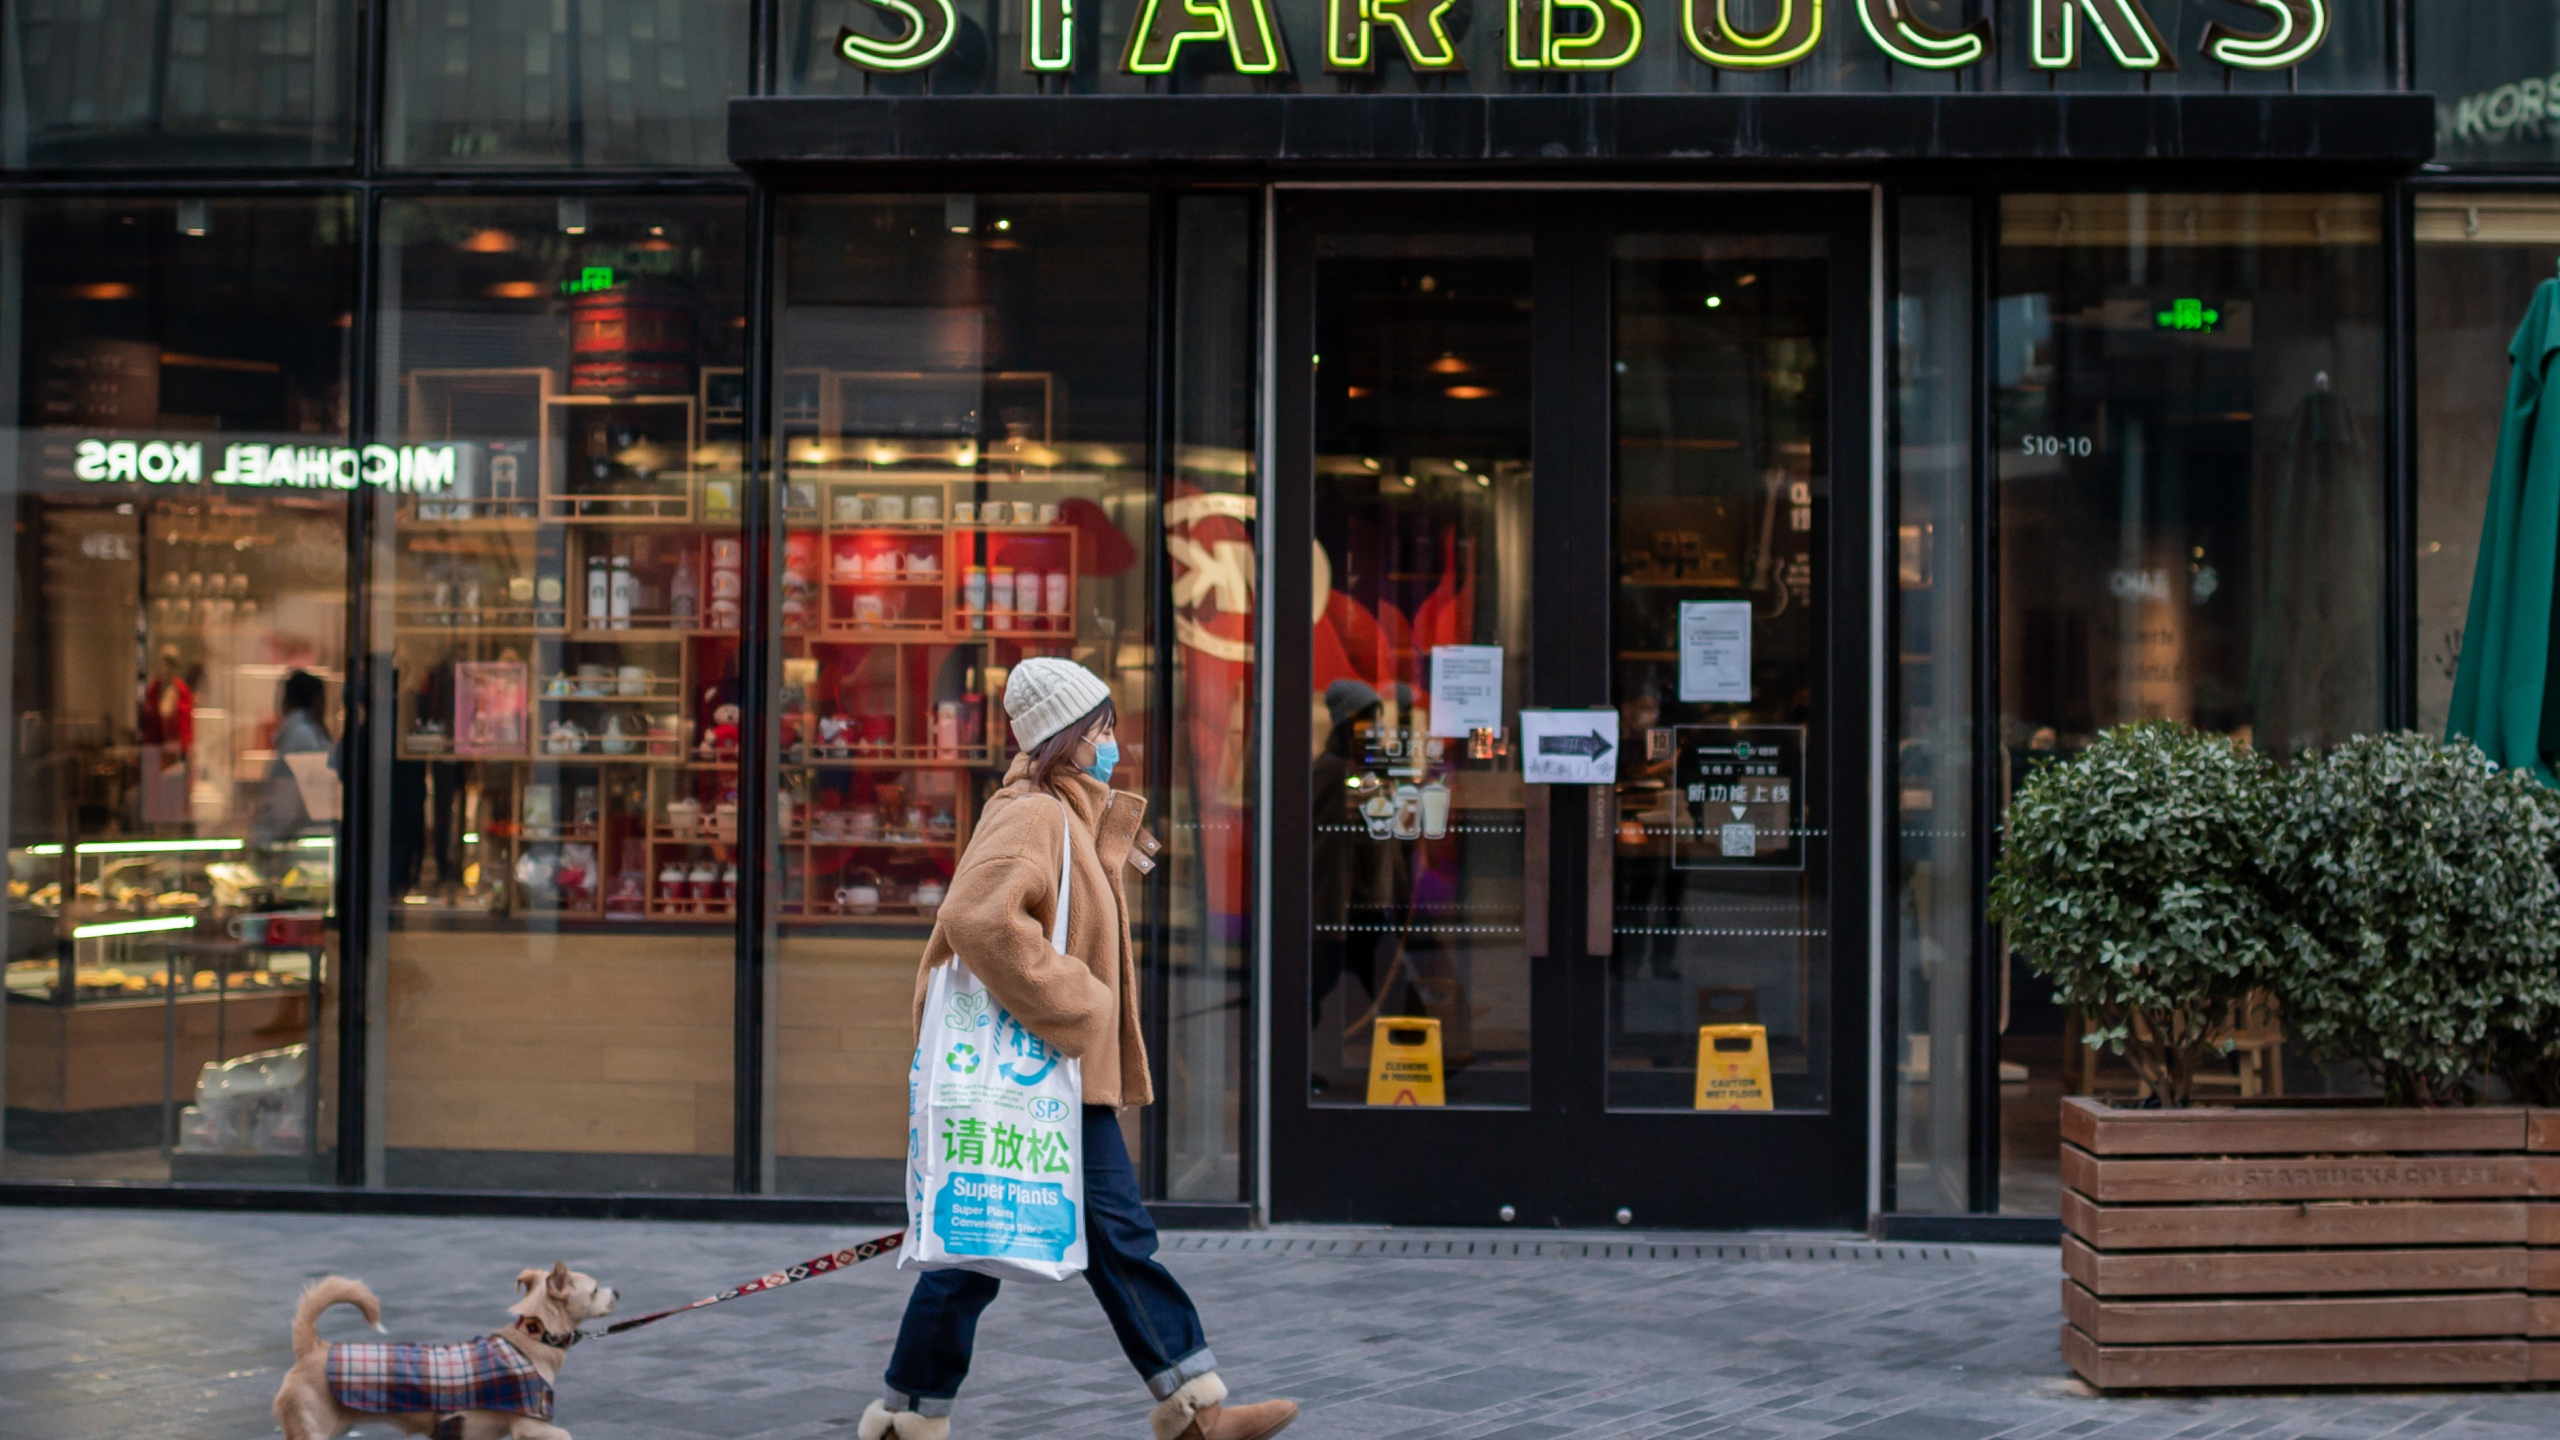 A woman, wearing a protective facemask, walks past a Starbucks coffee shop with her dog in Beijing on Jan. 30, 2020. (NICOLAS ASFOURI/AFP via Getty Images)